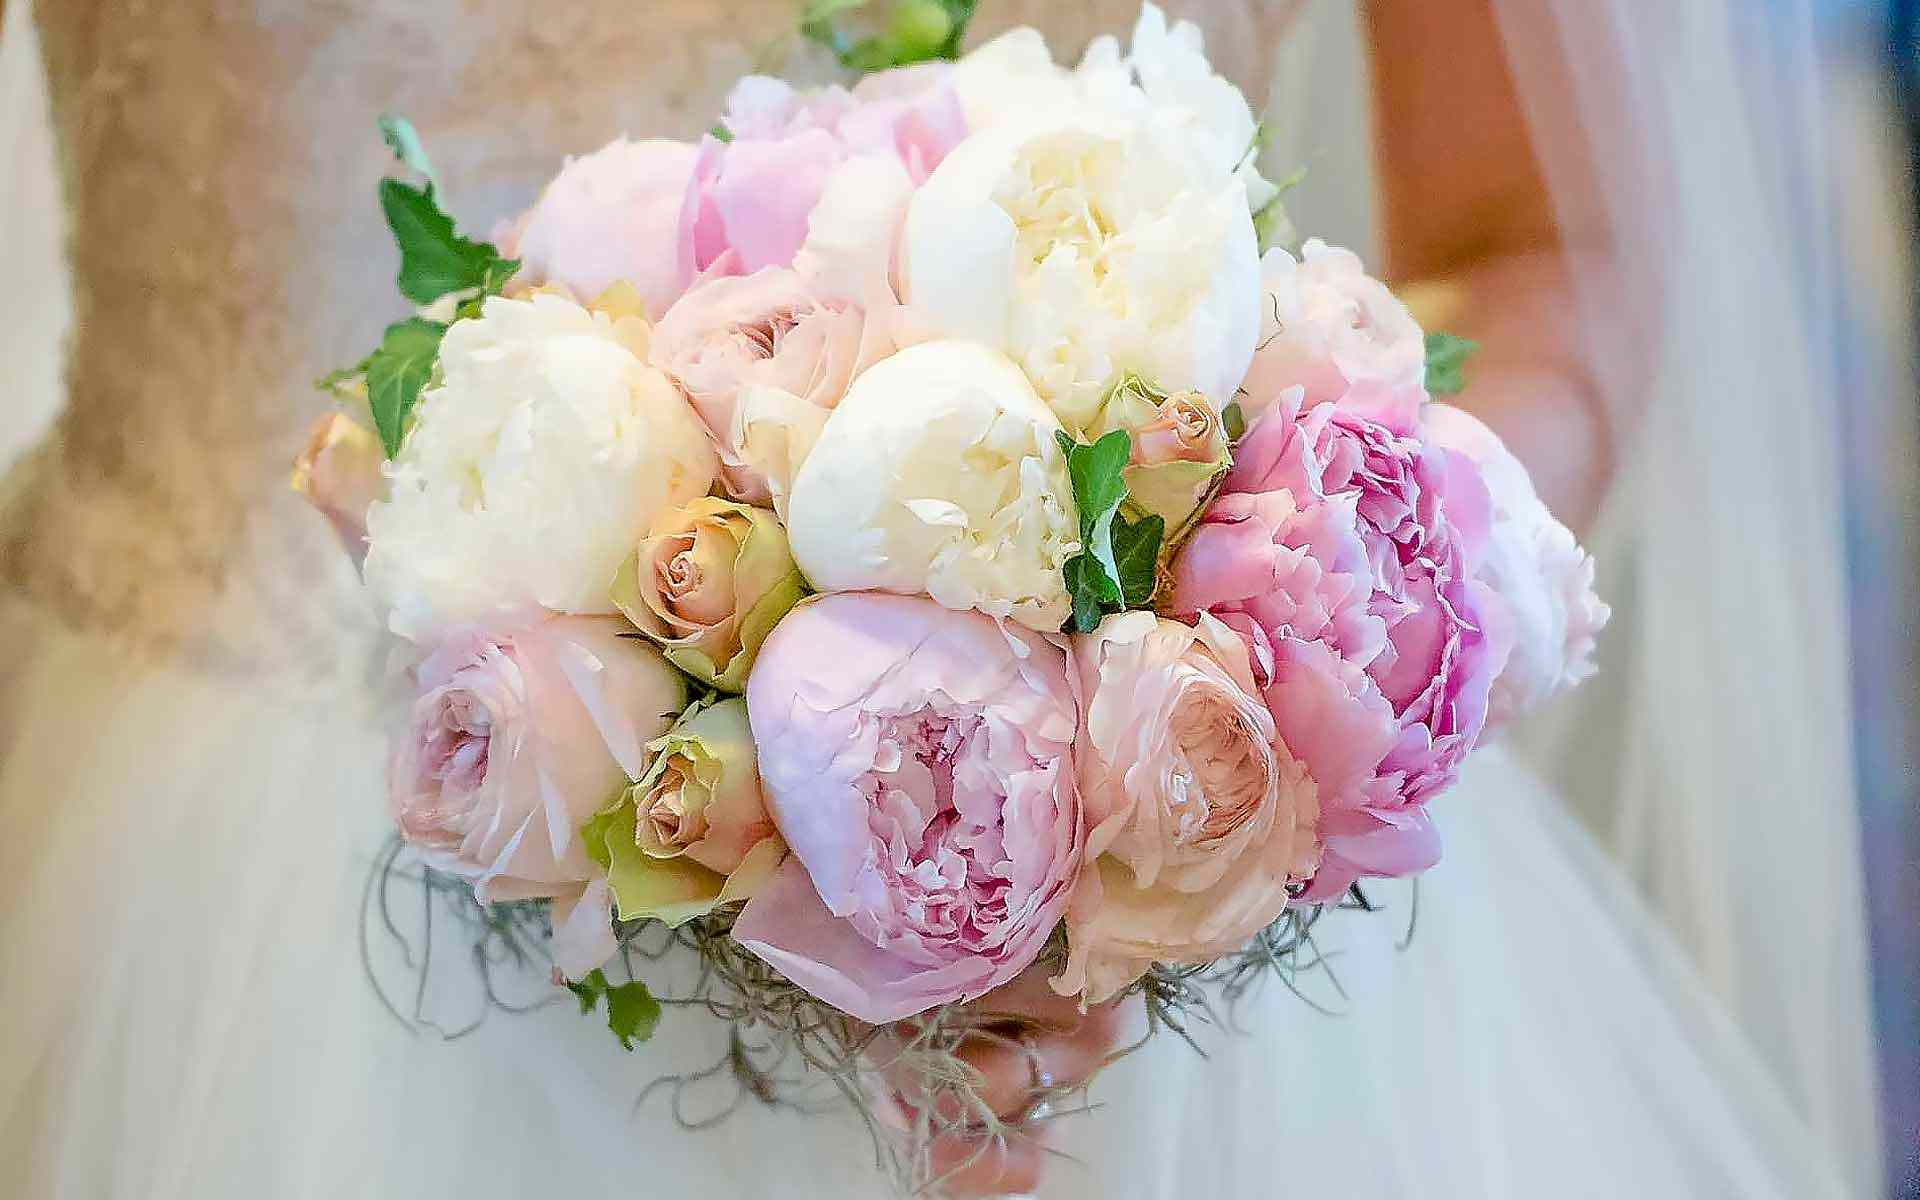 Shabby-Chic-Wedding-Bouquet-With-White-Pink-Peonies-by-Diamond-Events